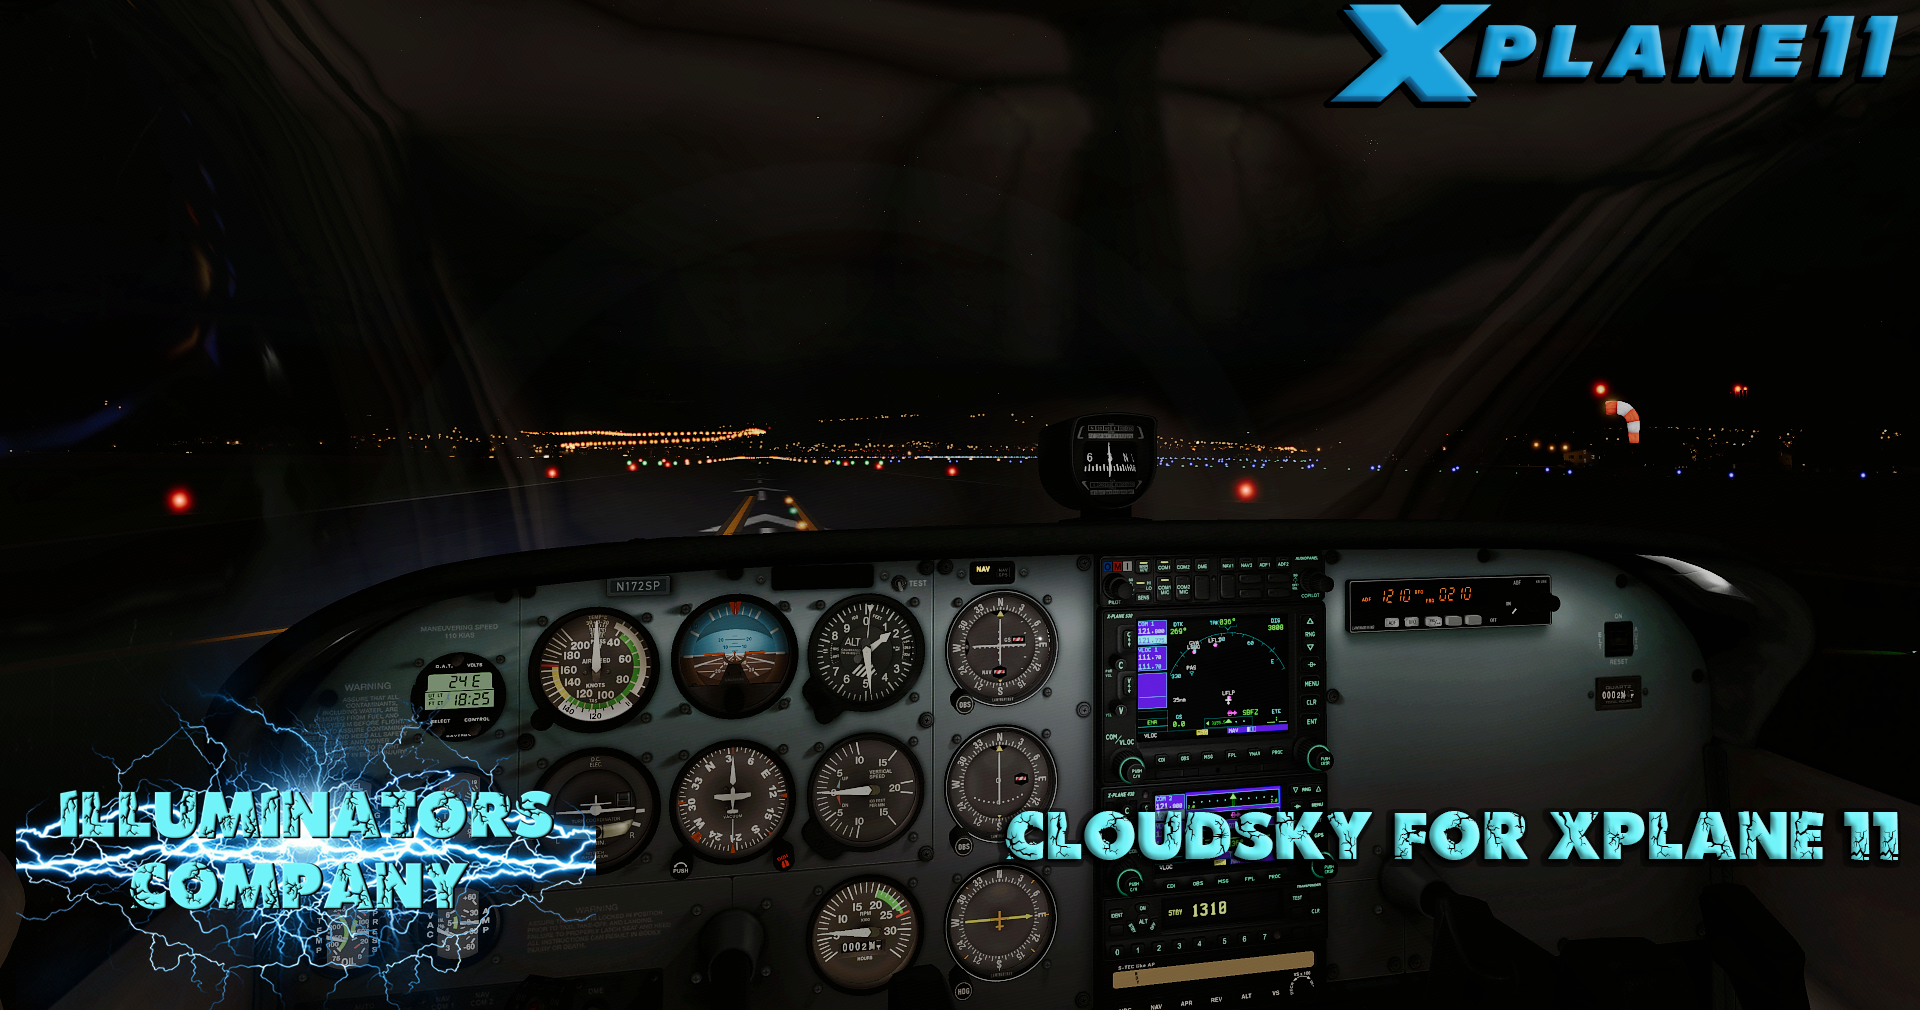 ILLUMINATORS - CLOUDSKY 2020 FOR X-PLANE 11